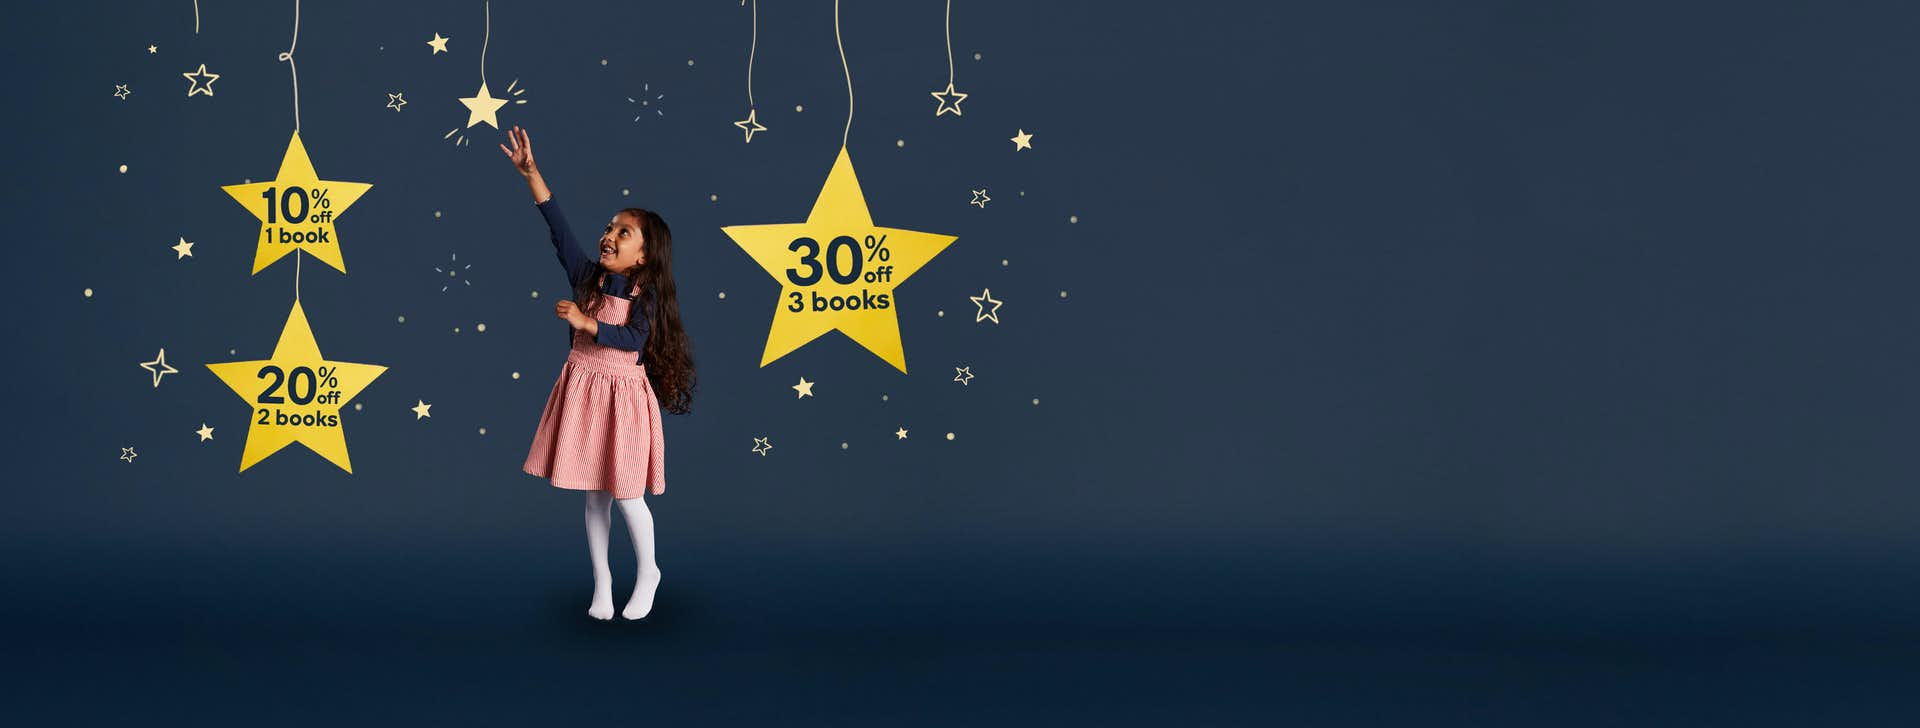 Reach for the stars with our Christmas offers